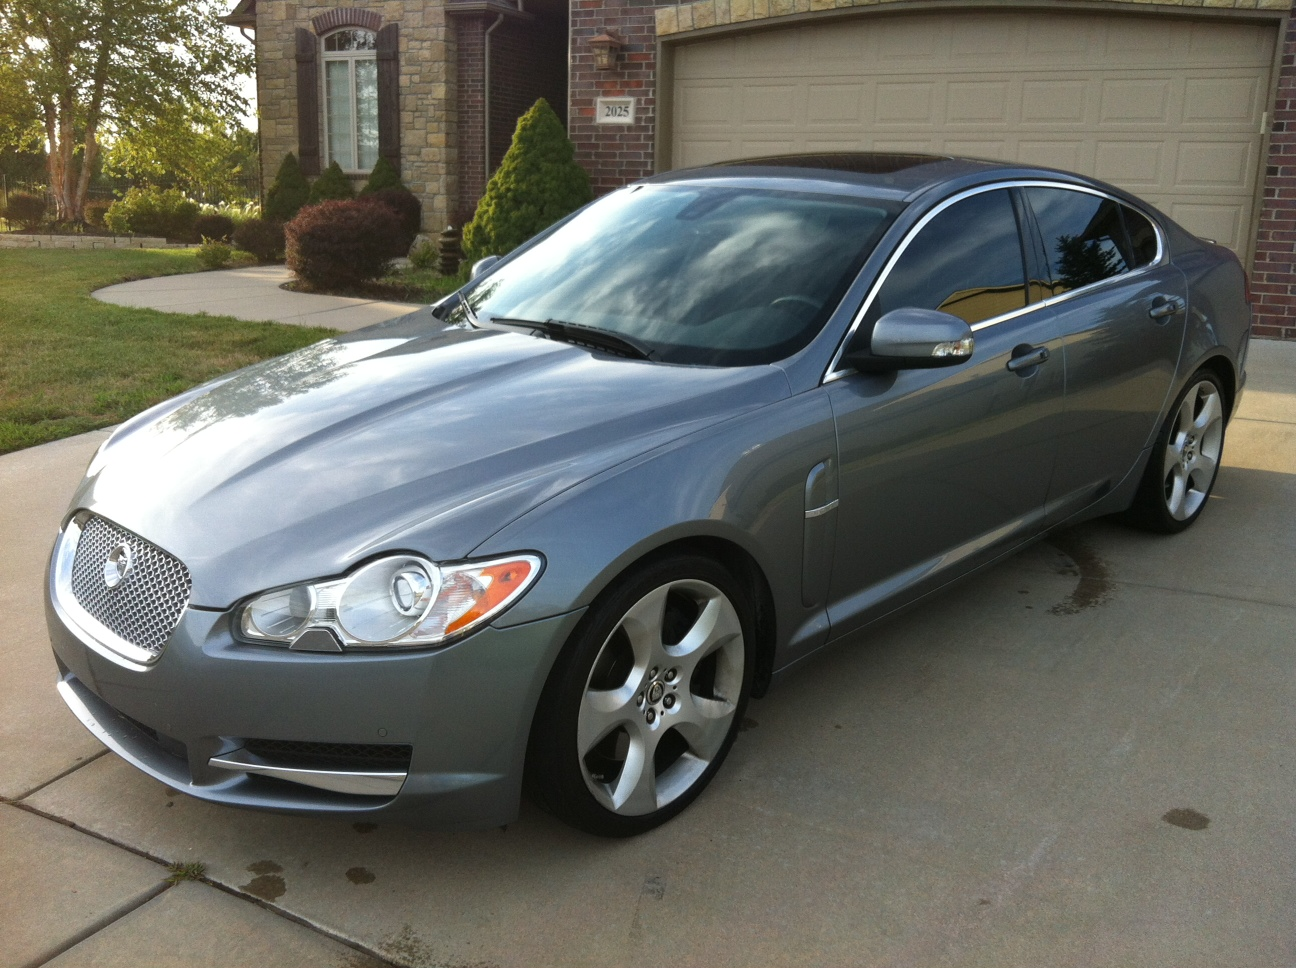 jaguar xf 2009 - photo #24